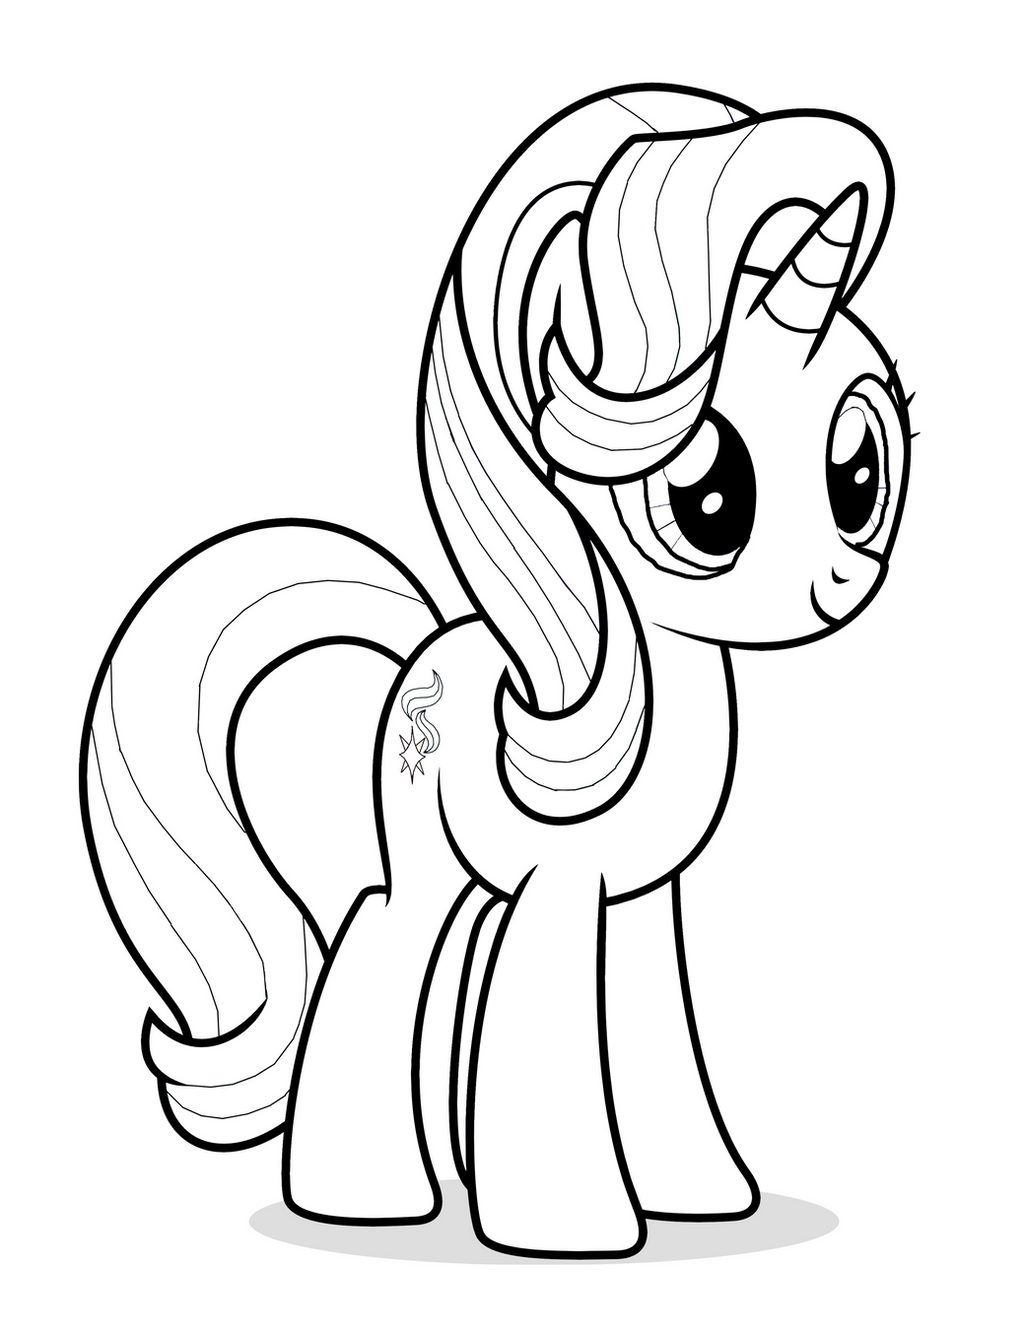 My Little Pony Starlight Glimmer Coloring Pages : Starlight glimmer coloring page by mrowymowy on deviantart